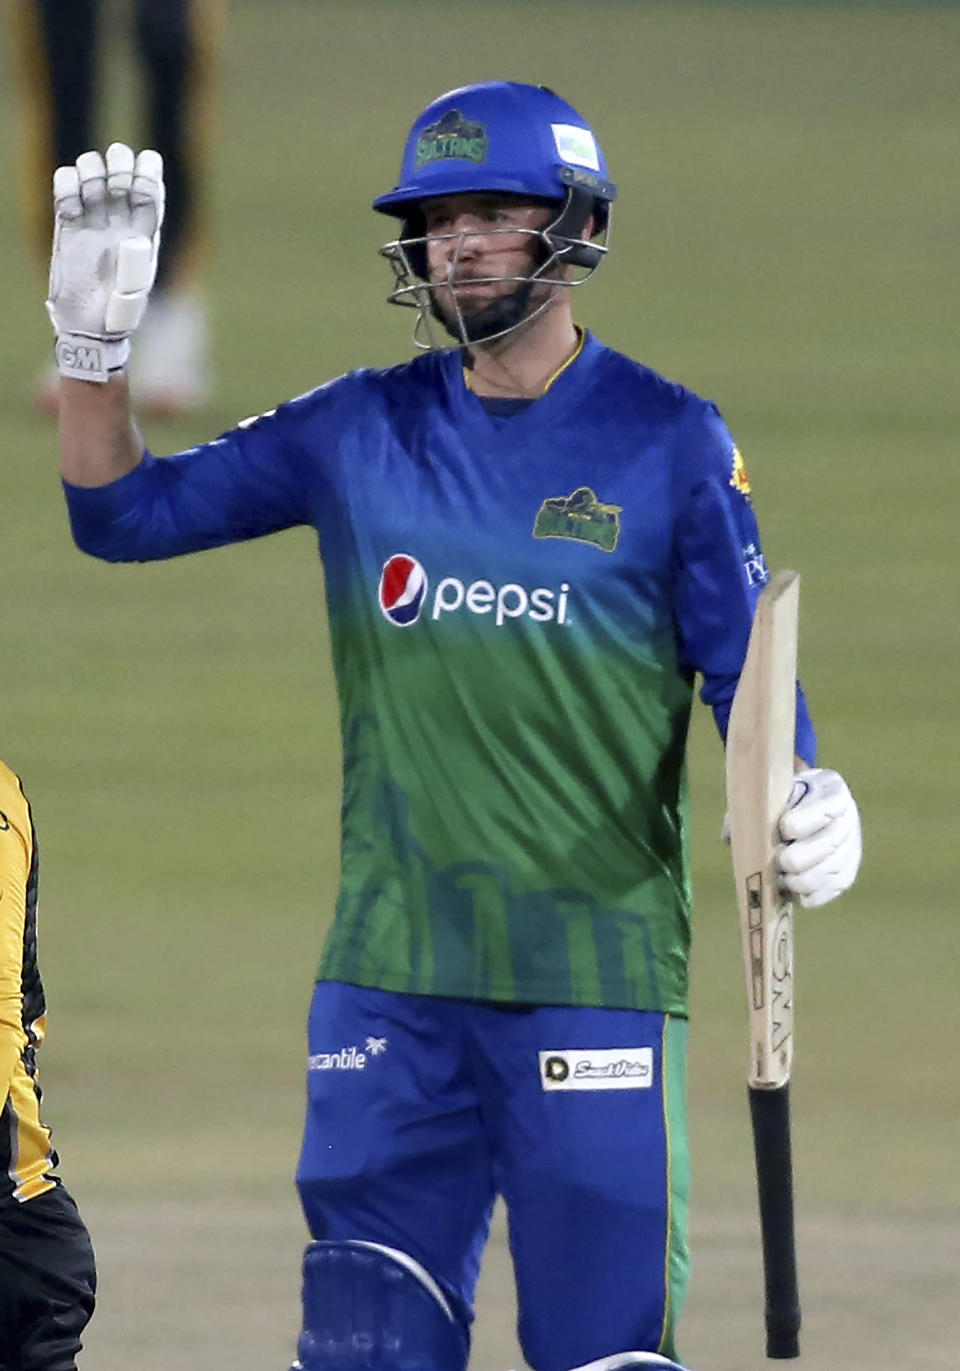 Multan Sultans' James Vince celebrates after scoring fifty during a Pakistan Super League T20 cricket match between Multan Sultans and Peshawar Zalmi at the National Stadium, in Karachi, Pakistan, Tuesday, Feb. 23, 2021. (AP Photo/Fareed Khan),